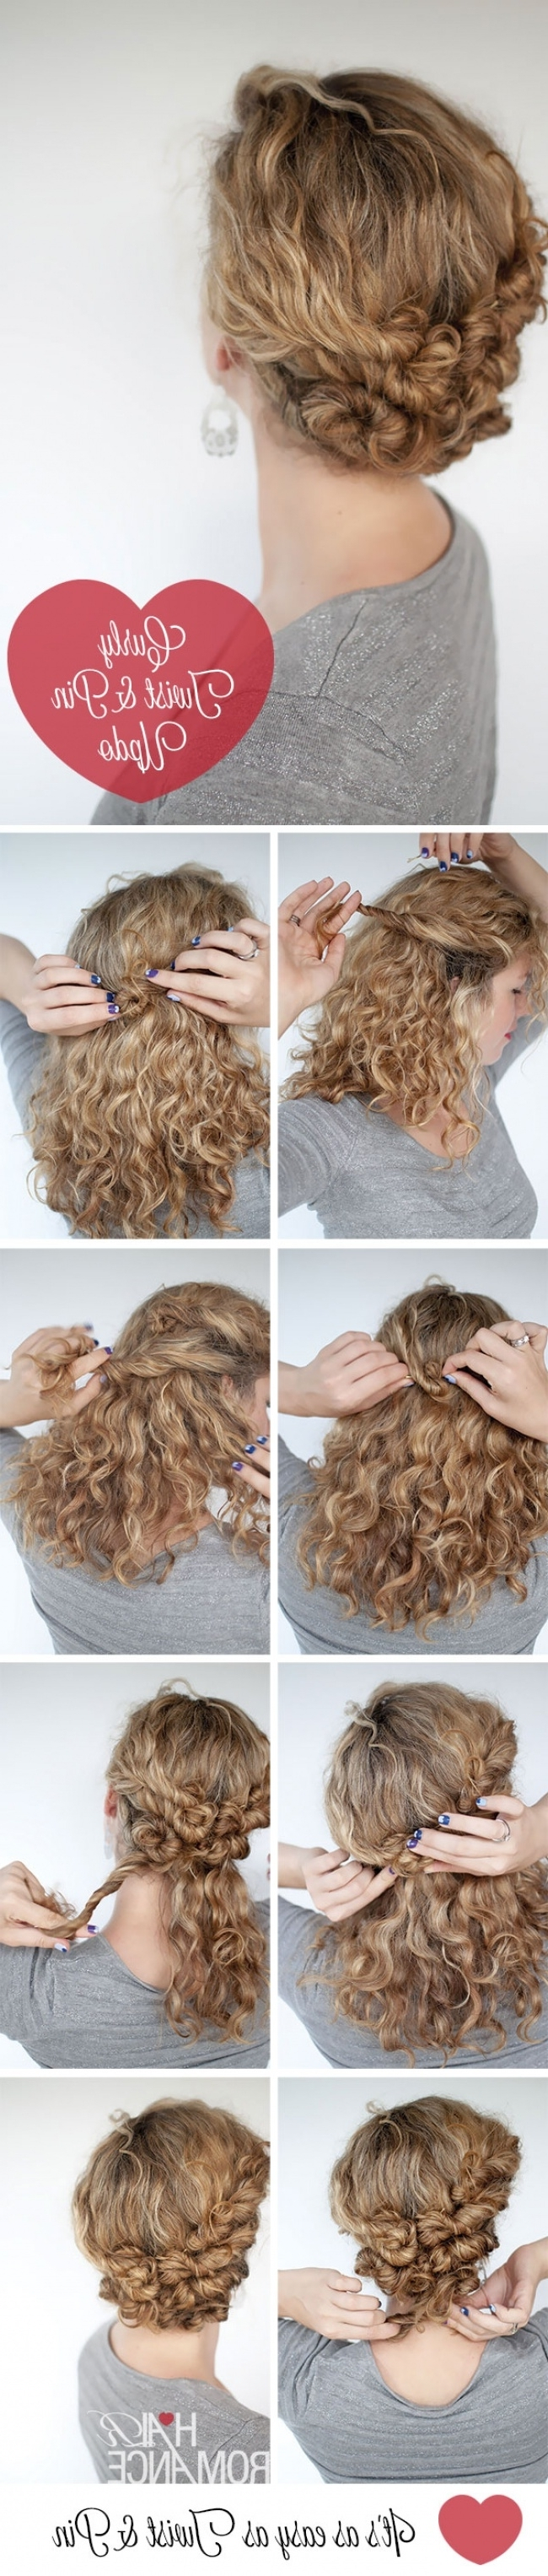 14 Fantastic Hairstyle Tutorials For Short And Naturally Curly Hair Inside Easy Updos For Long Curly Hair (View 2 of 15)